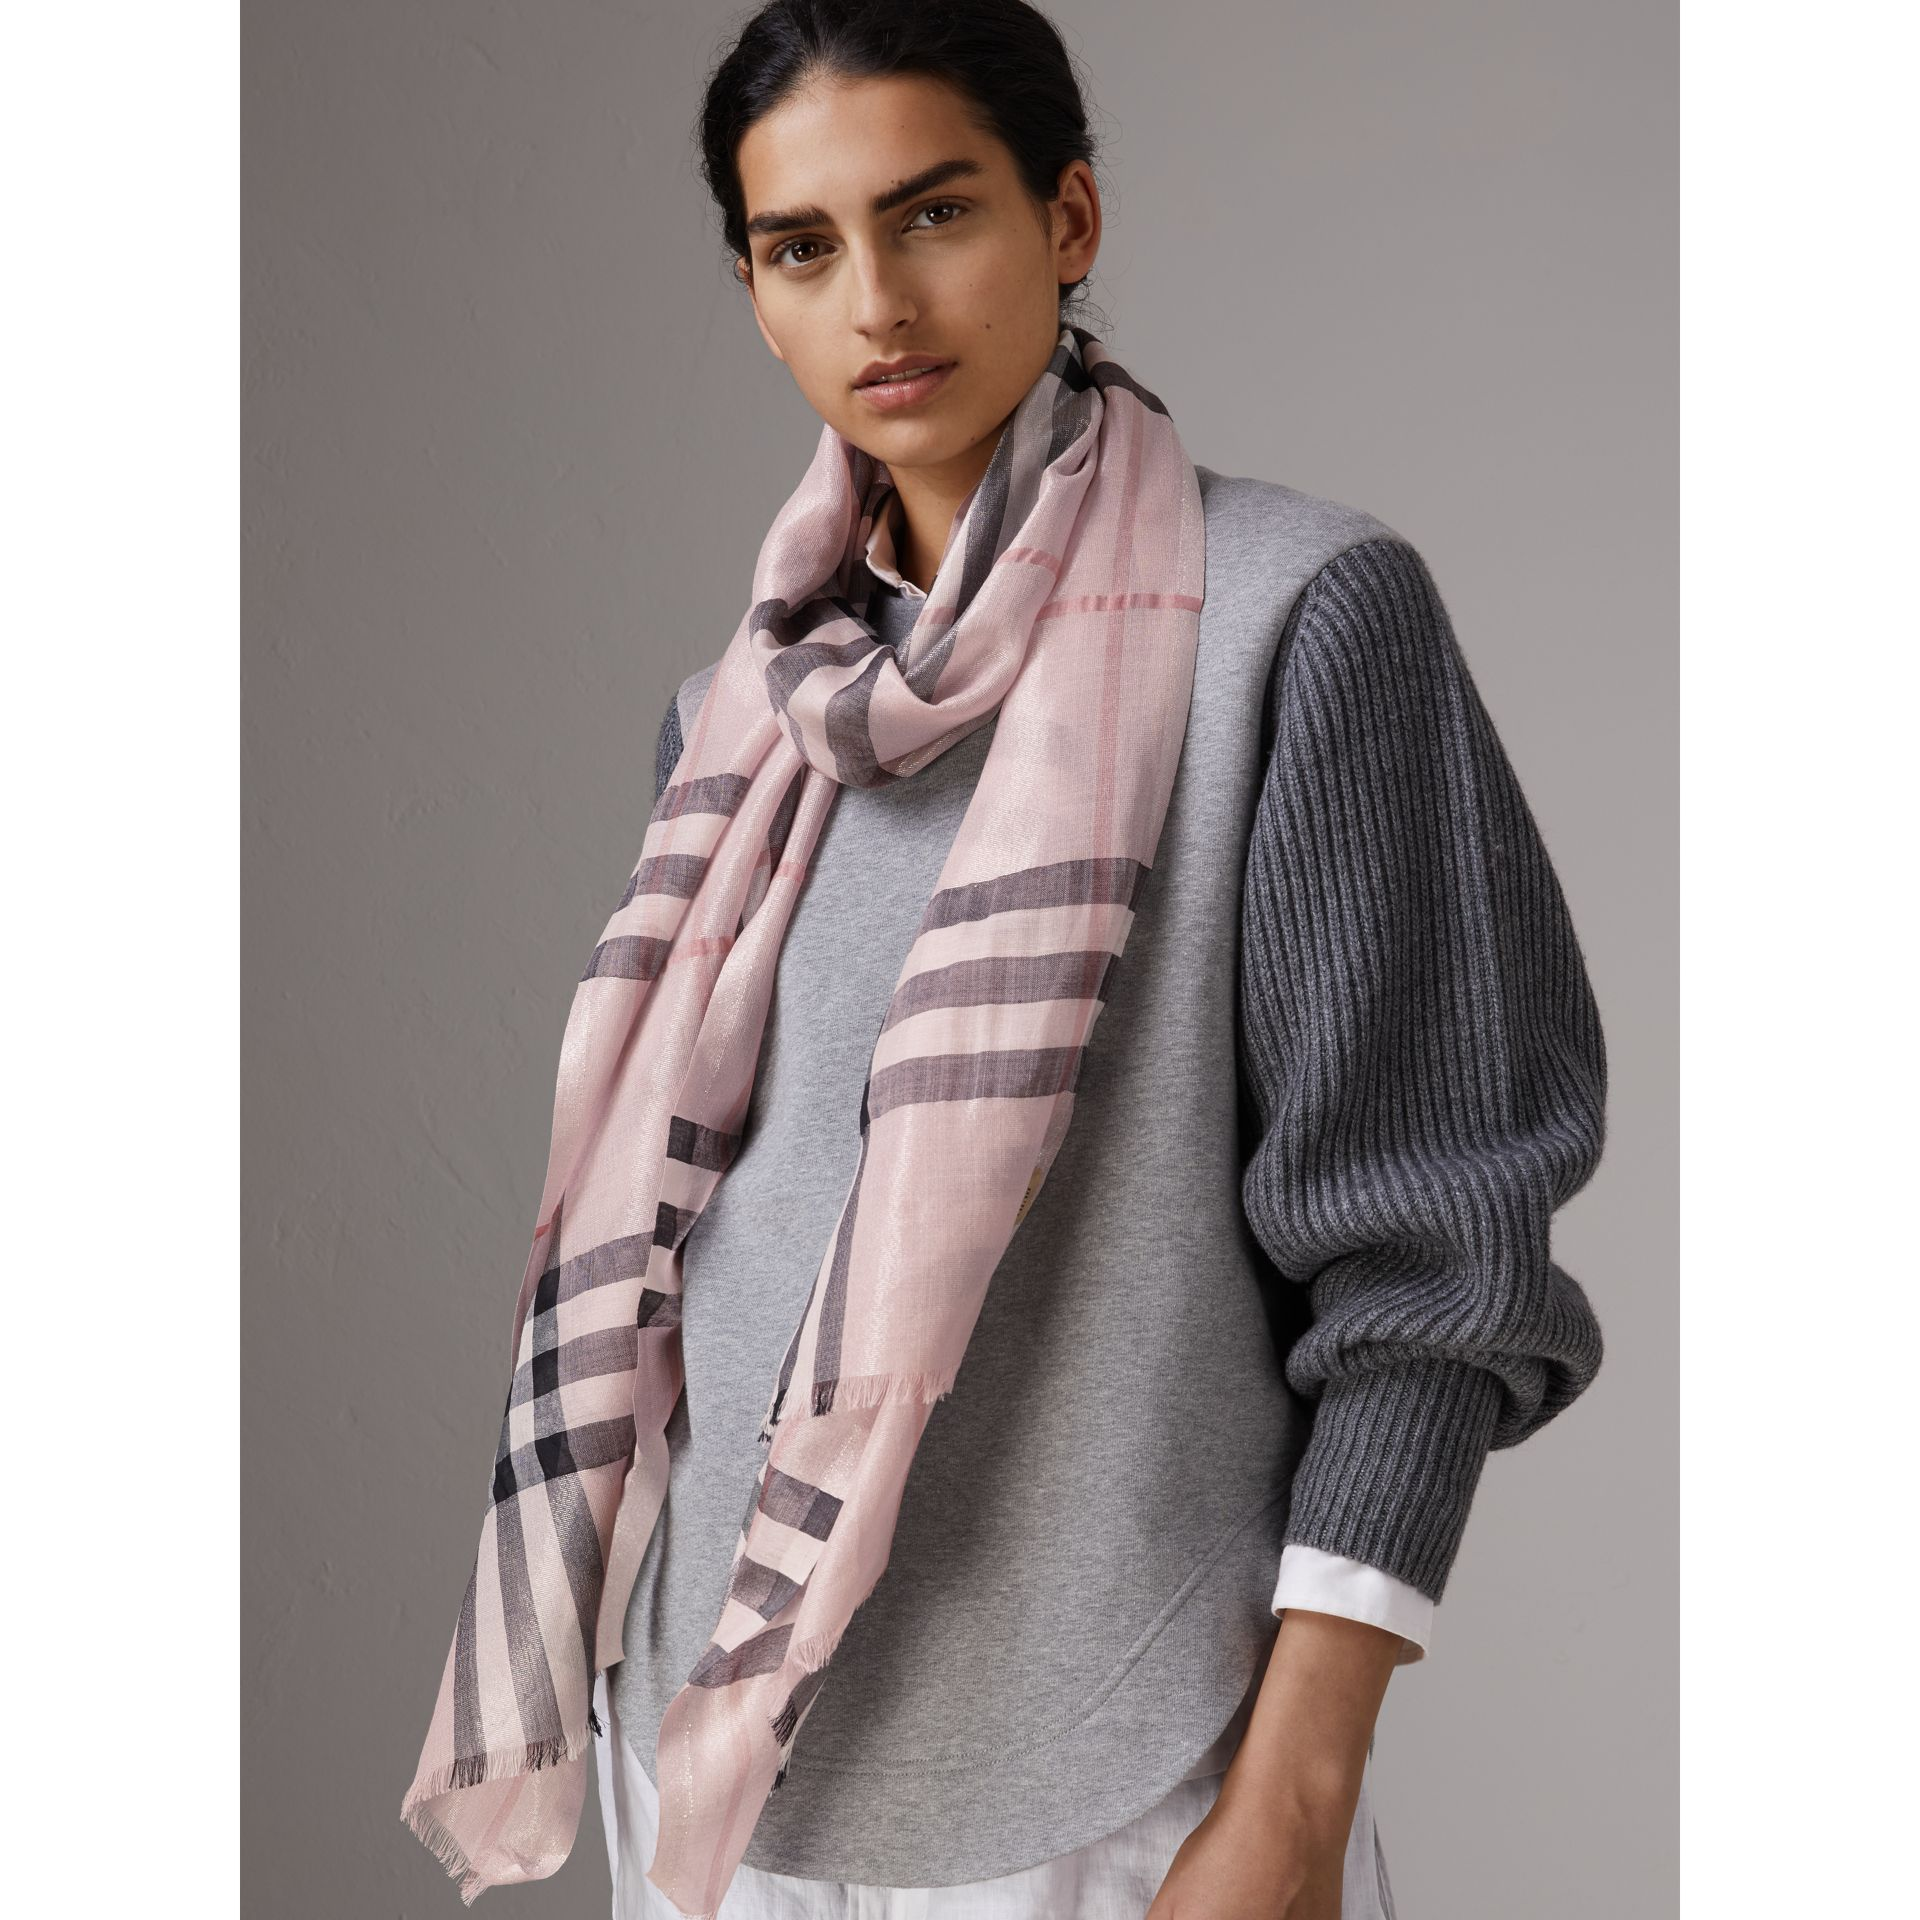 Metallic Check Silk and Wool Scarf in Ash Rose/silver - Women | Burberry Canada - gallery image 3